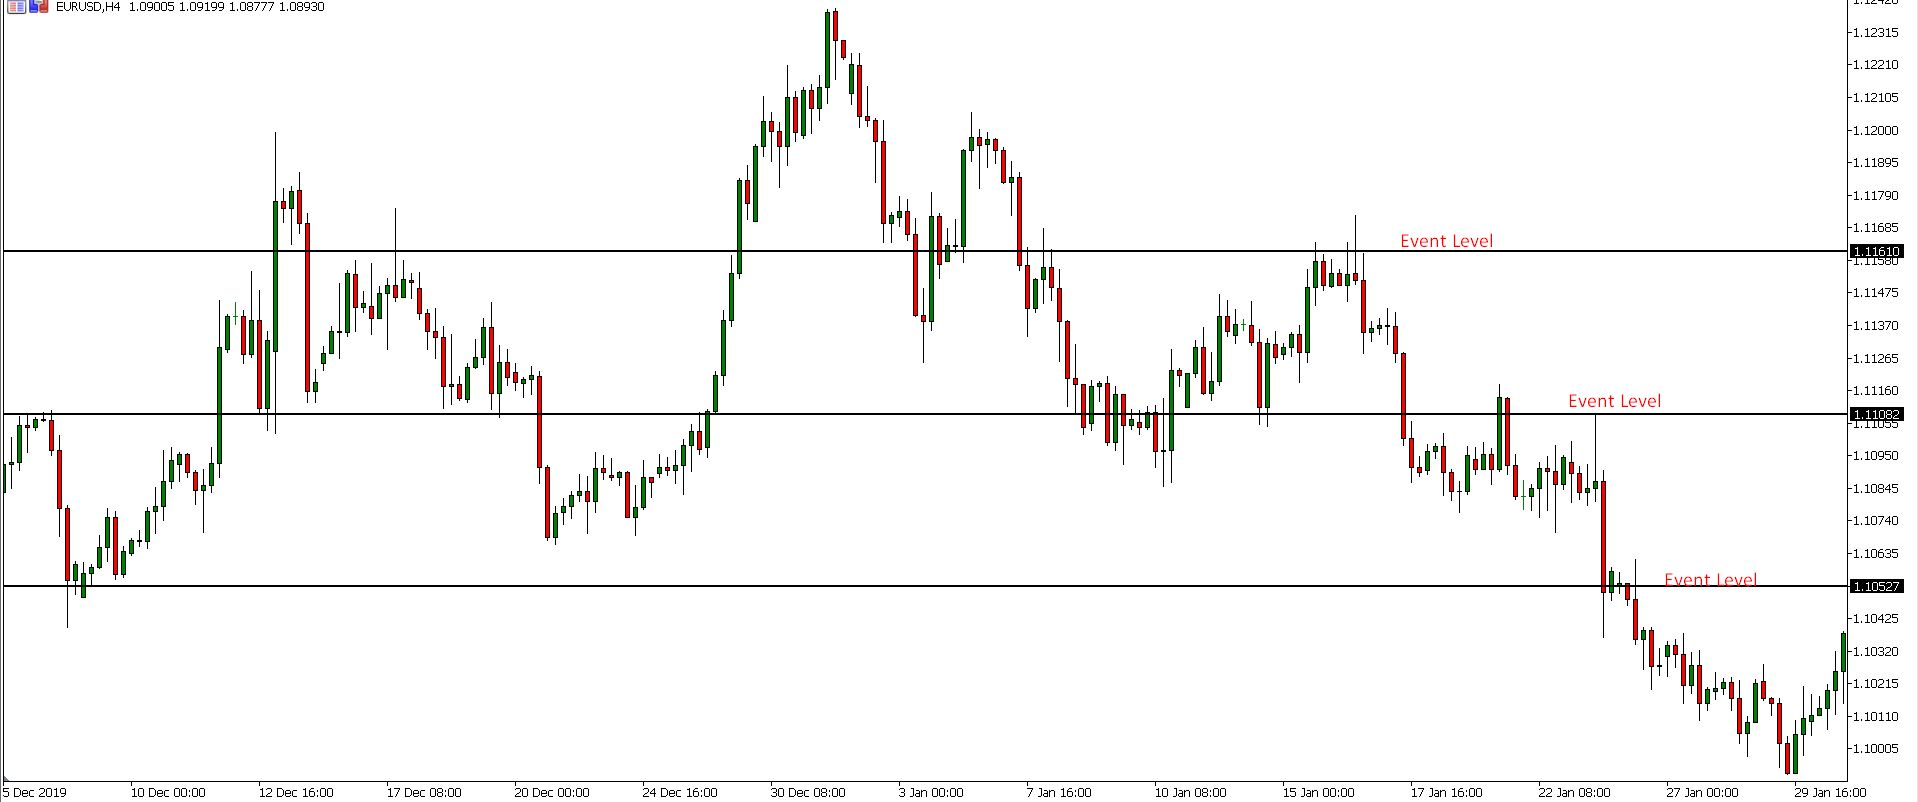 trade intraday using support and resistance- AtoZ market guide